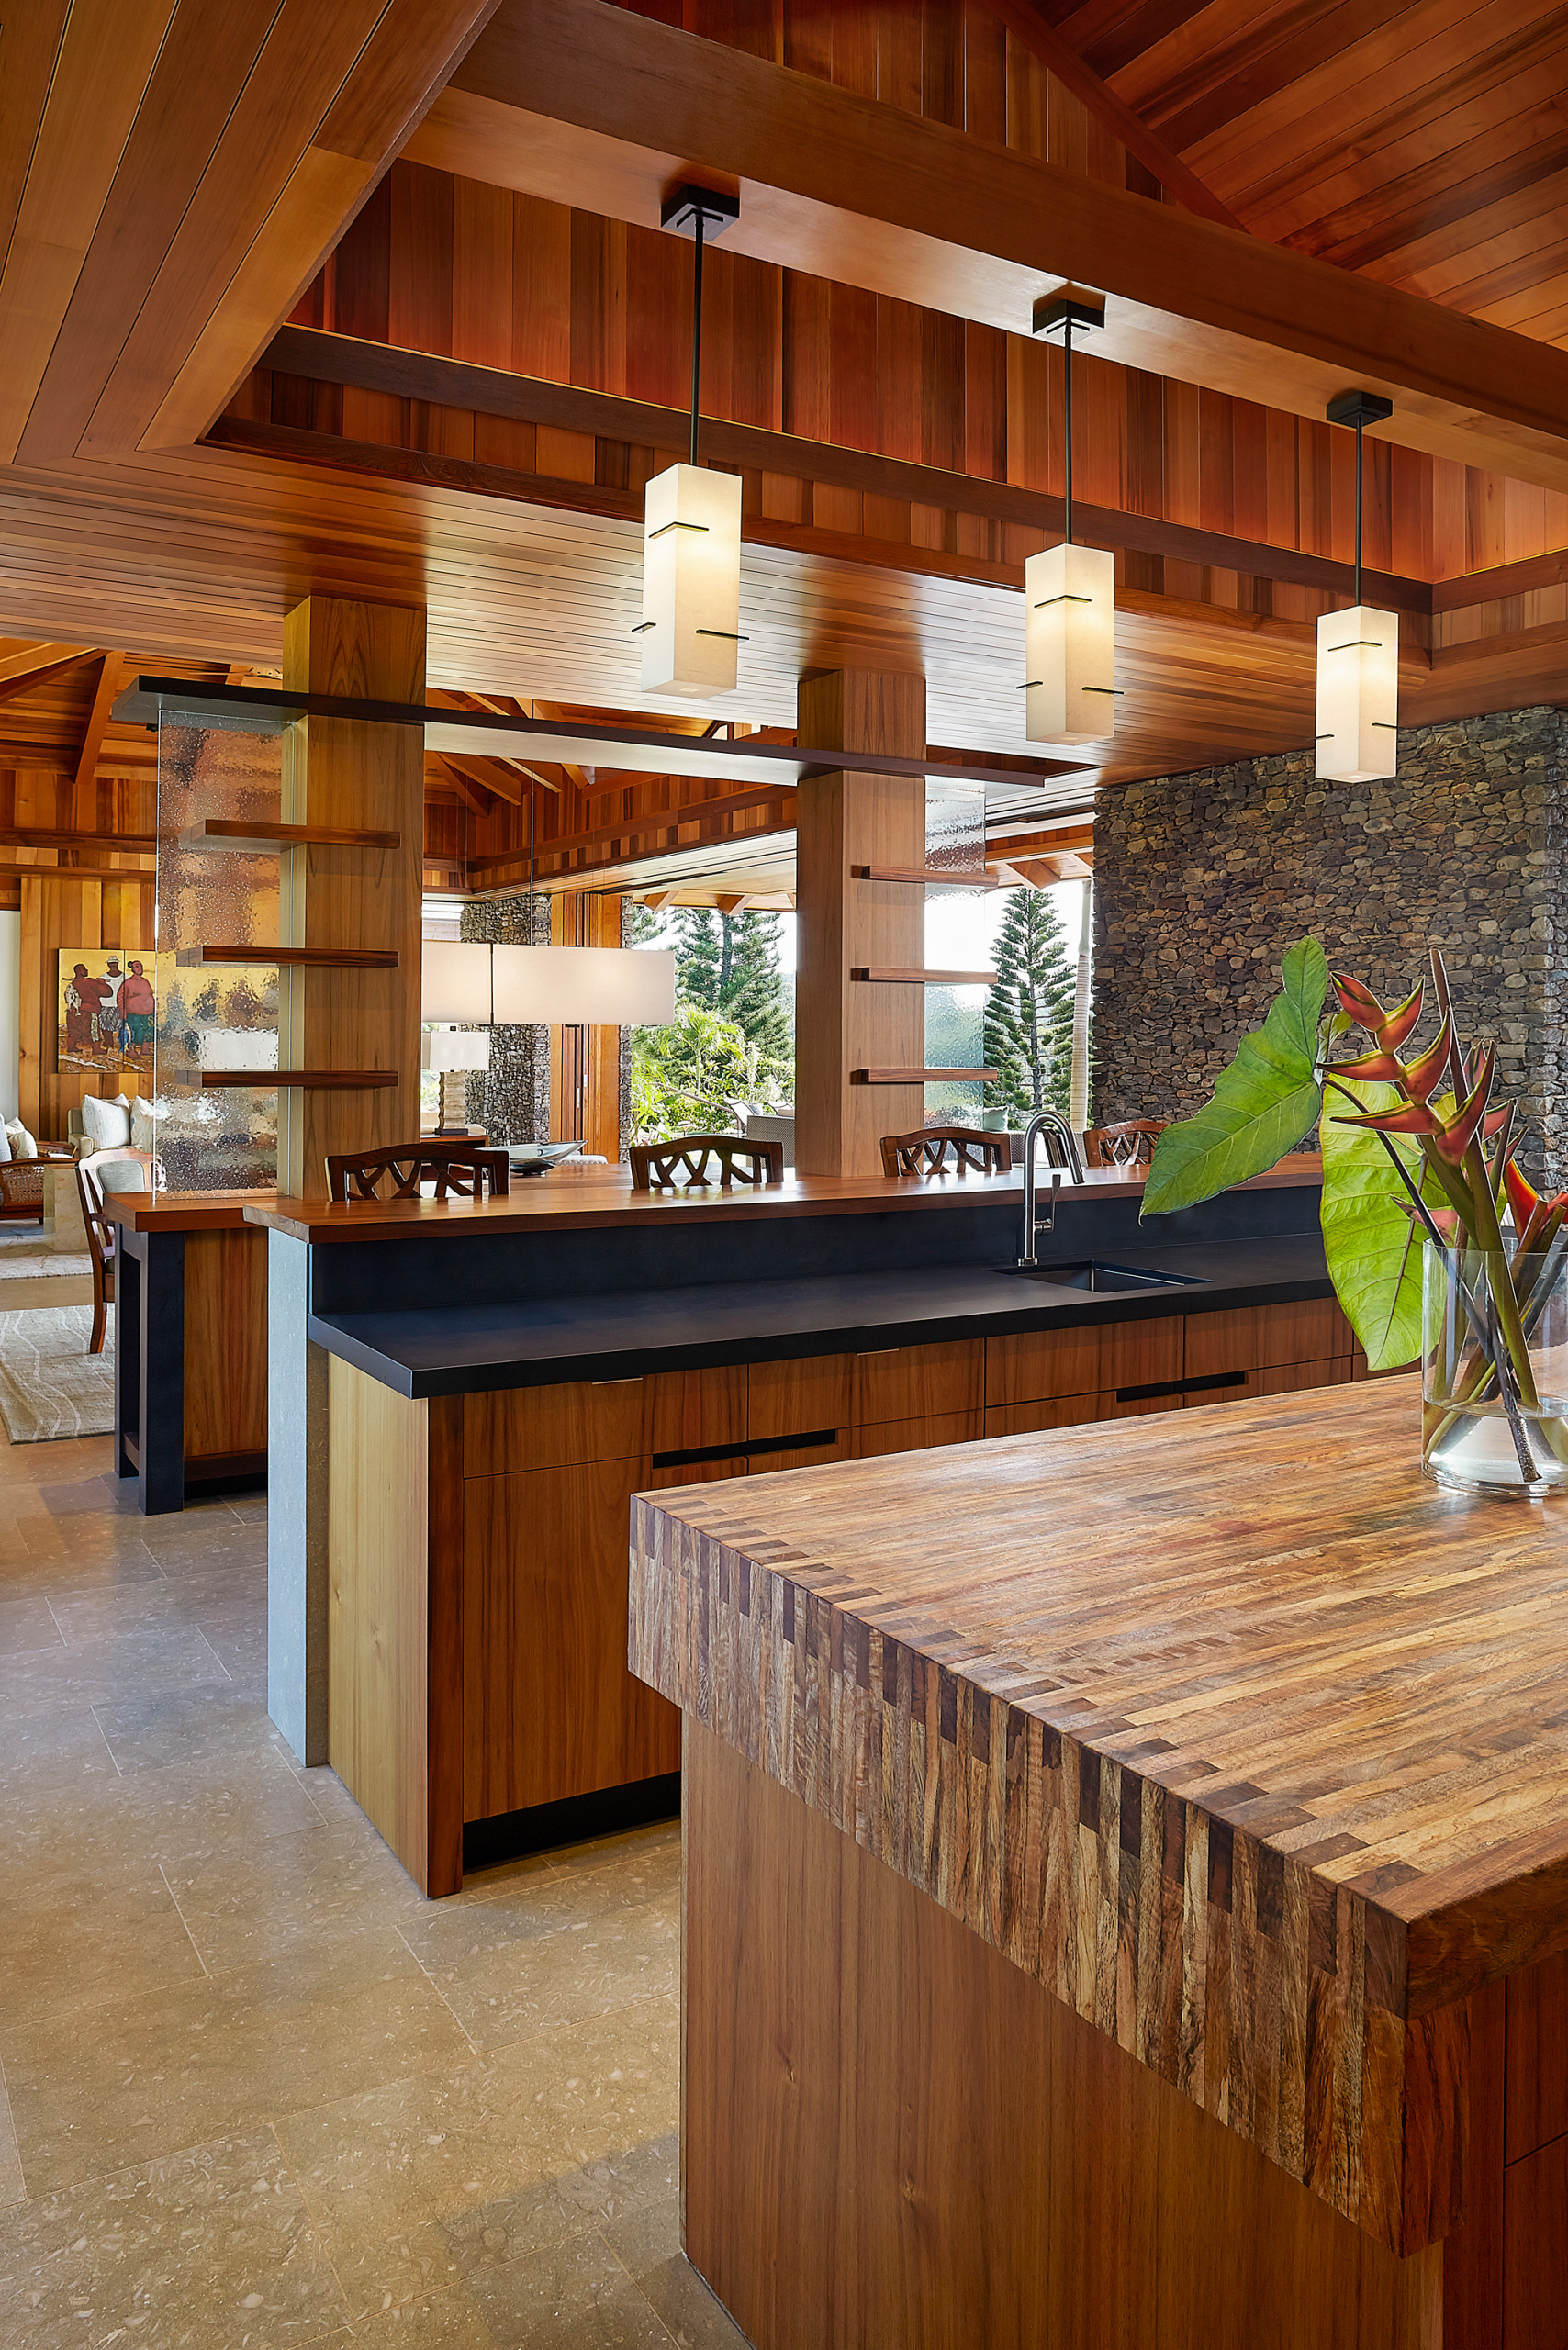 75 Beautiful Tropical Kitchen Pictures Ideas February 2021 Houzz